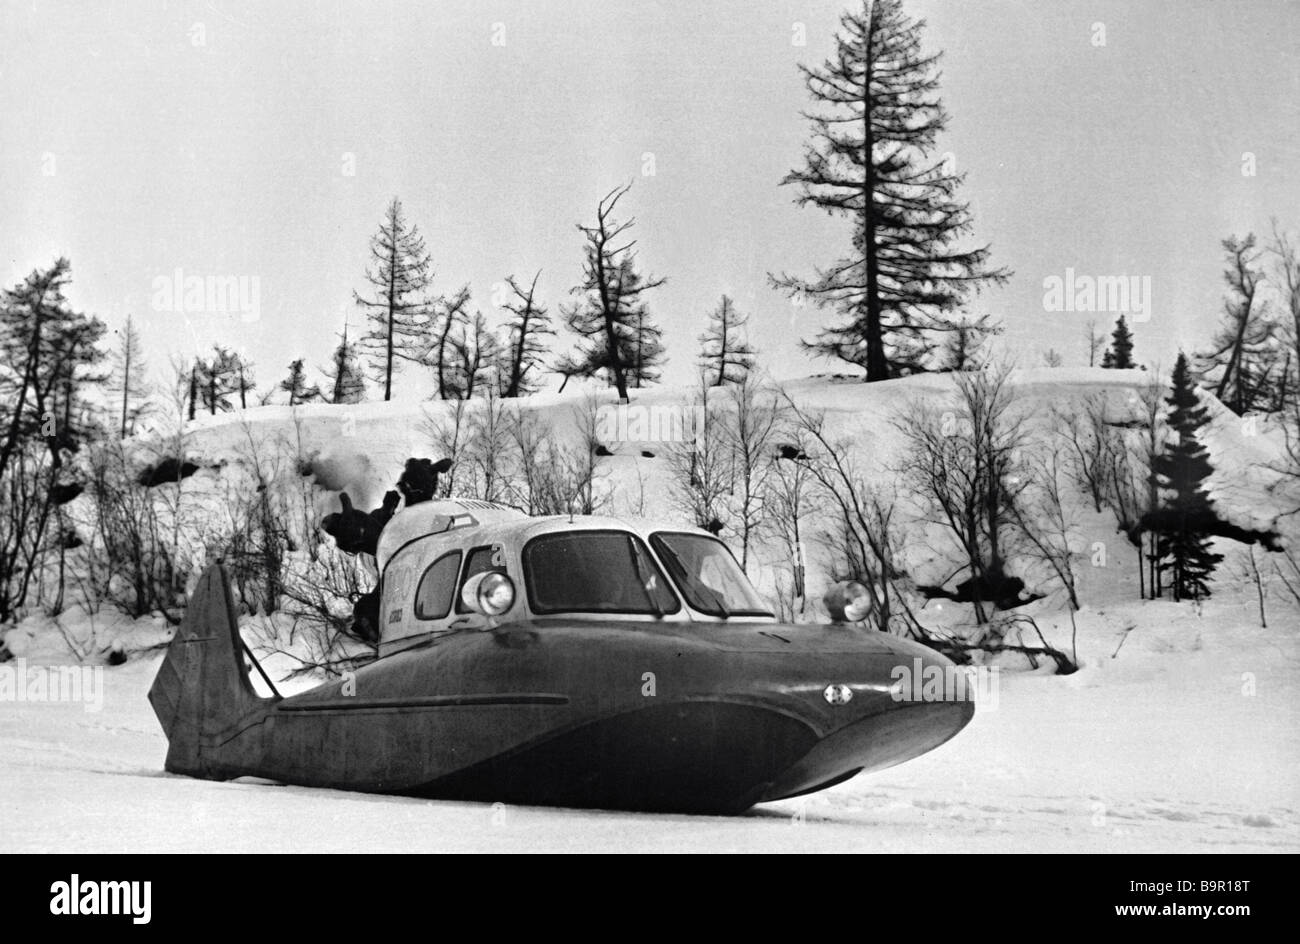 The amphibian aero sleigh designed by Andrei Tupolev being tested - Stock Image